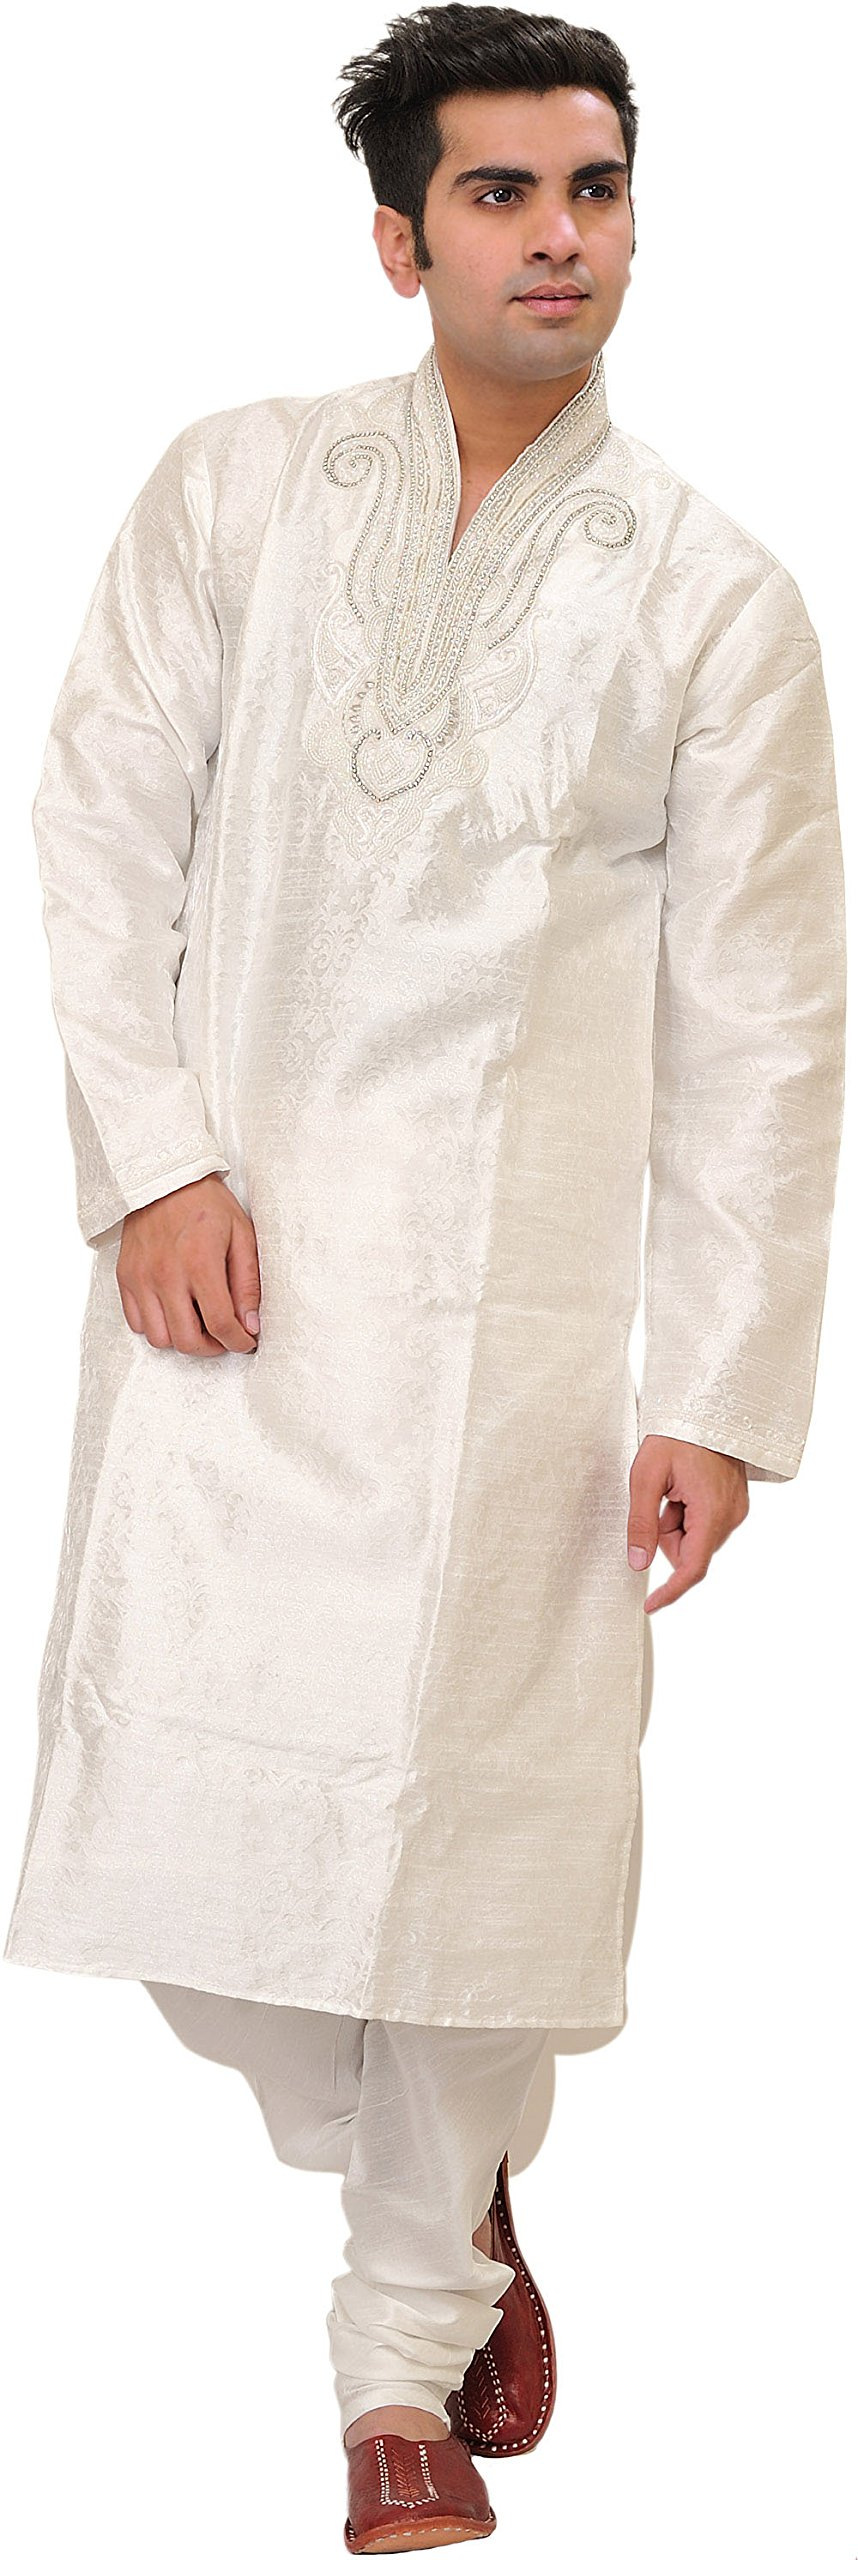 Exotic India Bright-White Wedding Kurta Pajama Set With Size 40 by Exotic India